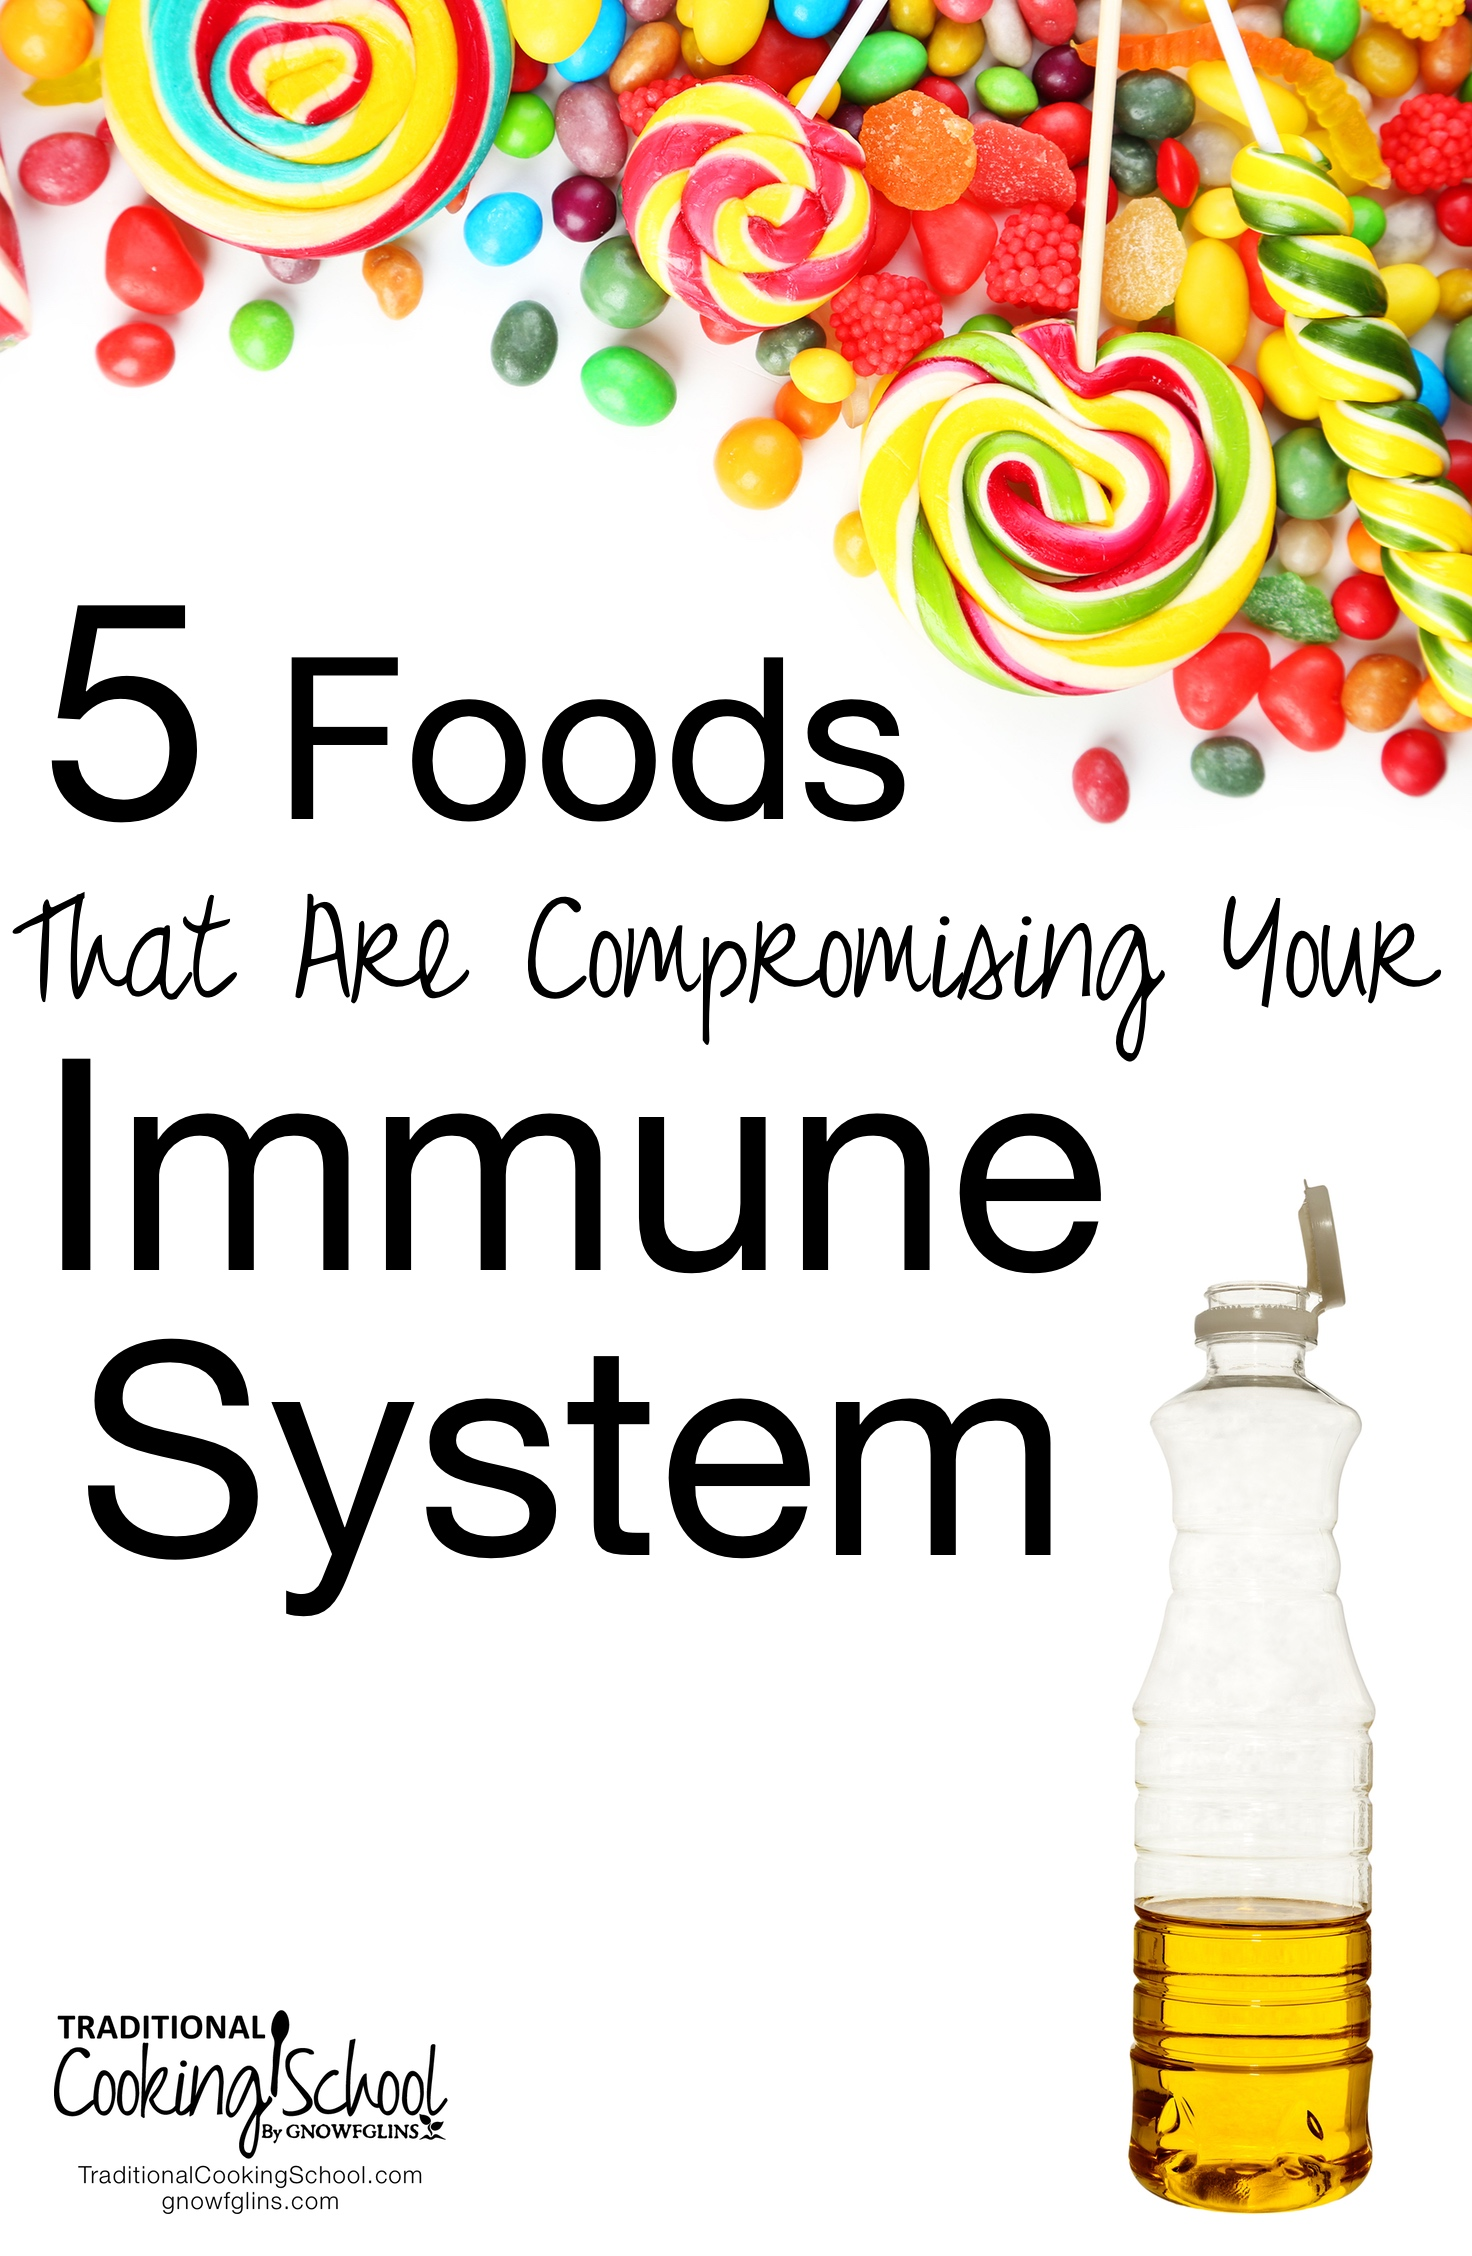 5 Foods That Are Compromising Your Immune System | The one thing that could be hurting your immune system? It's not how much you exercise, what supplements you take, or what natural practitioner you visit. Can you guess what that one thing is? It's the food you eat! Here are the top five foods you can reduce or eliminate for the sake of your immune system. | TraditionalCookingSchool.com